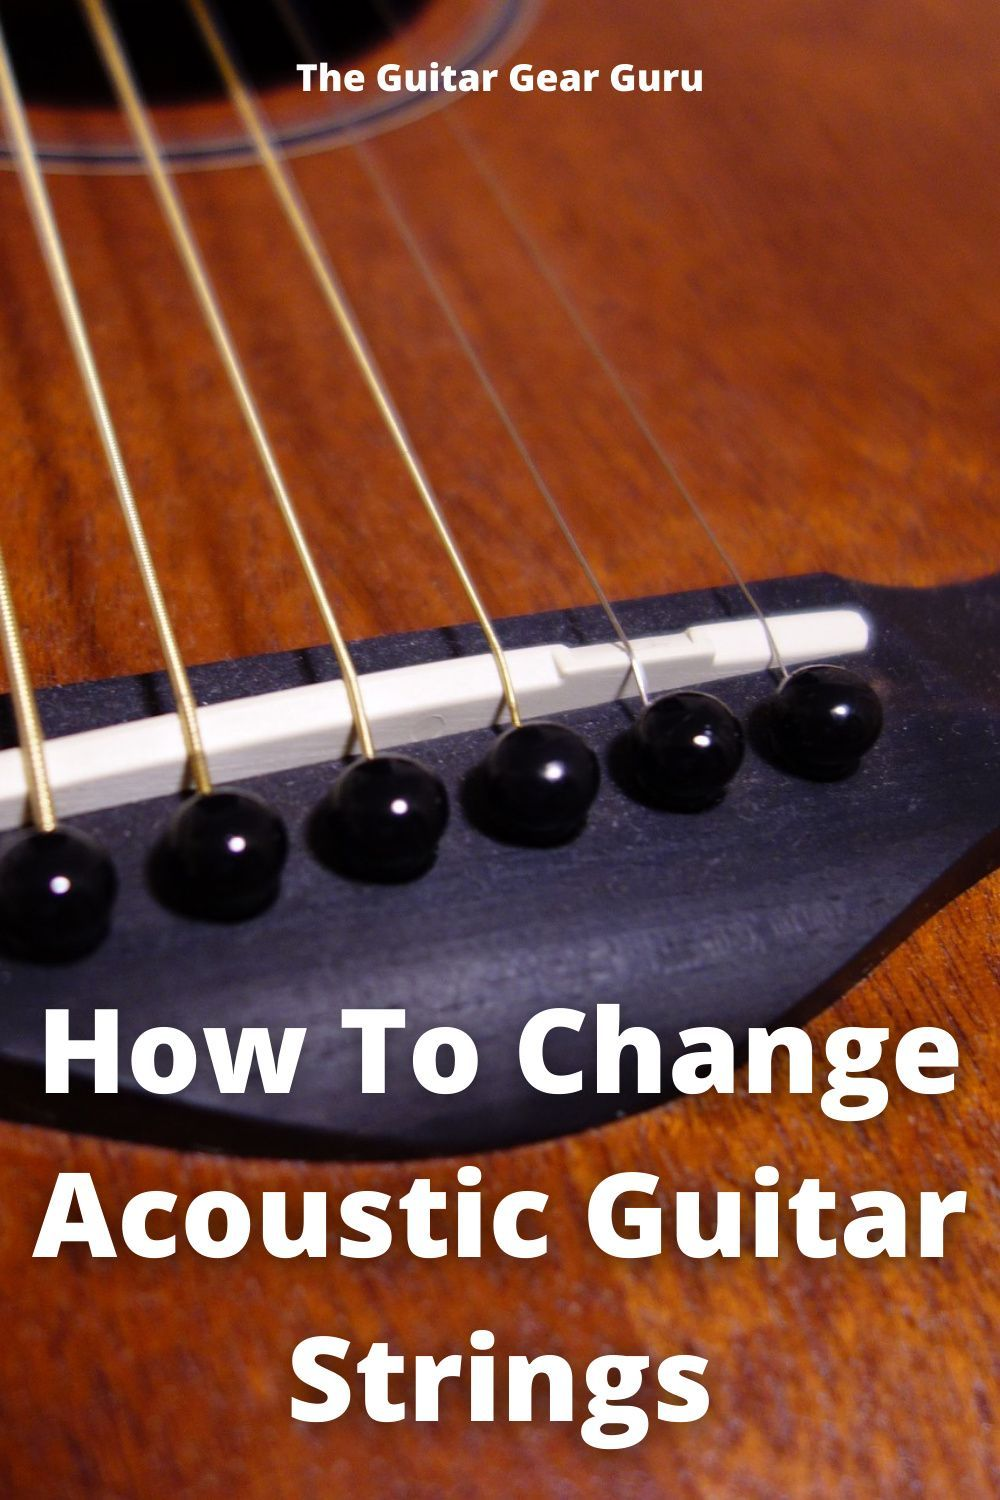 How To Change Acoustic Guitar Strings Acoustic Guitar Strings Acoustic Guitar Guitar Strings